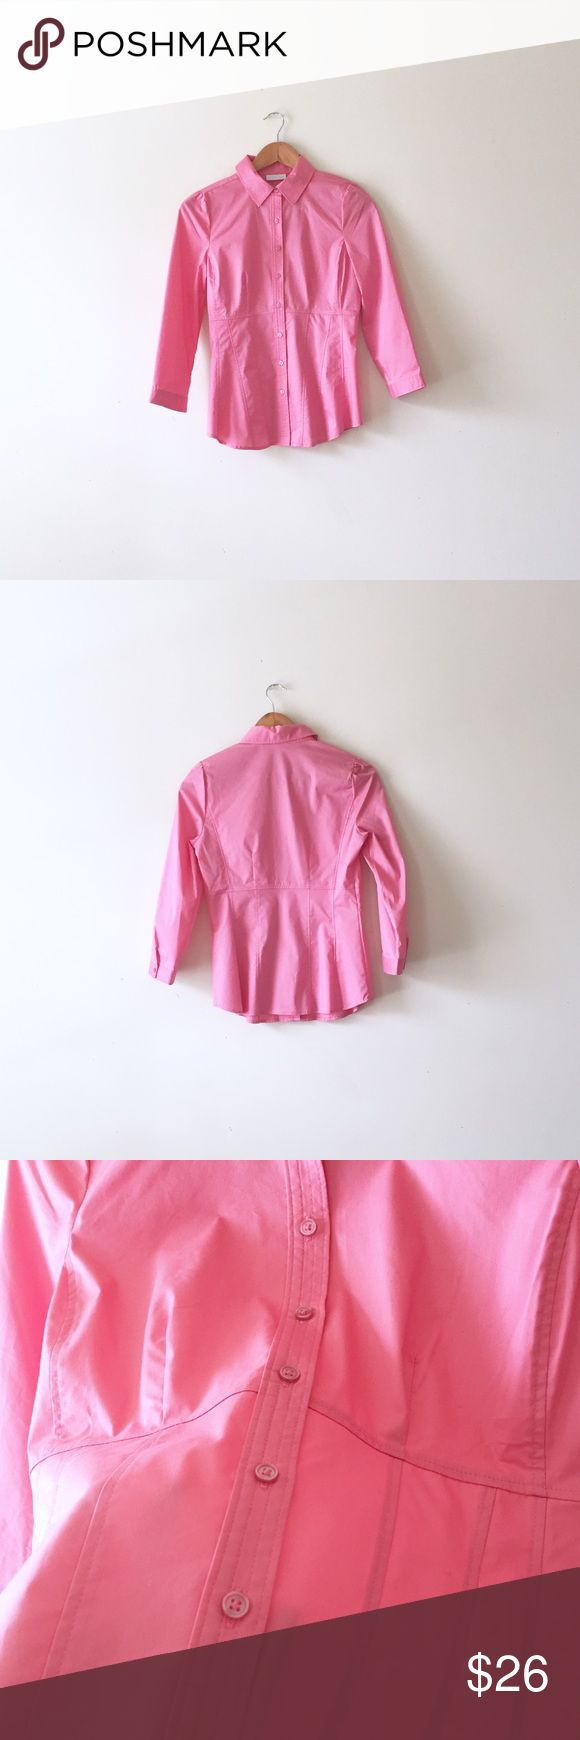 NY&Co pink dress shirt Size XS, NWT. Stretchy fitted button down shirt in pink. New York & Company Tops Button Down Shirts